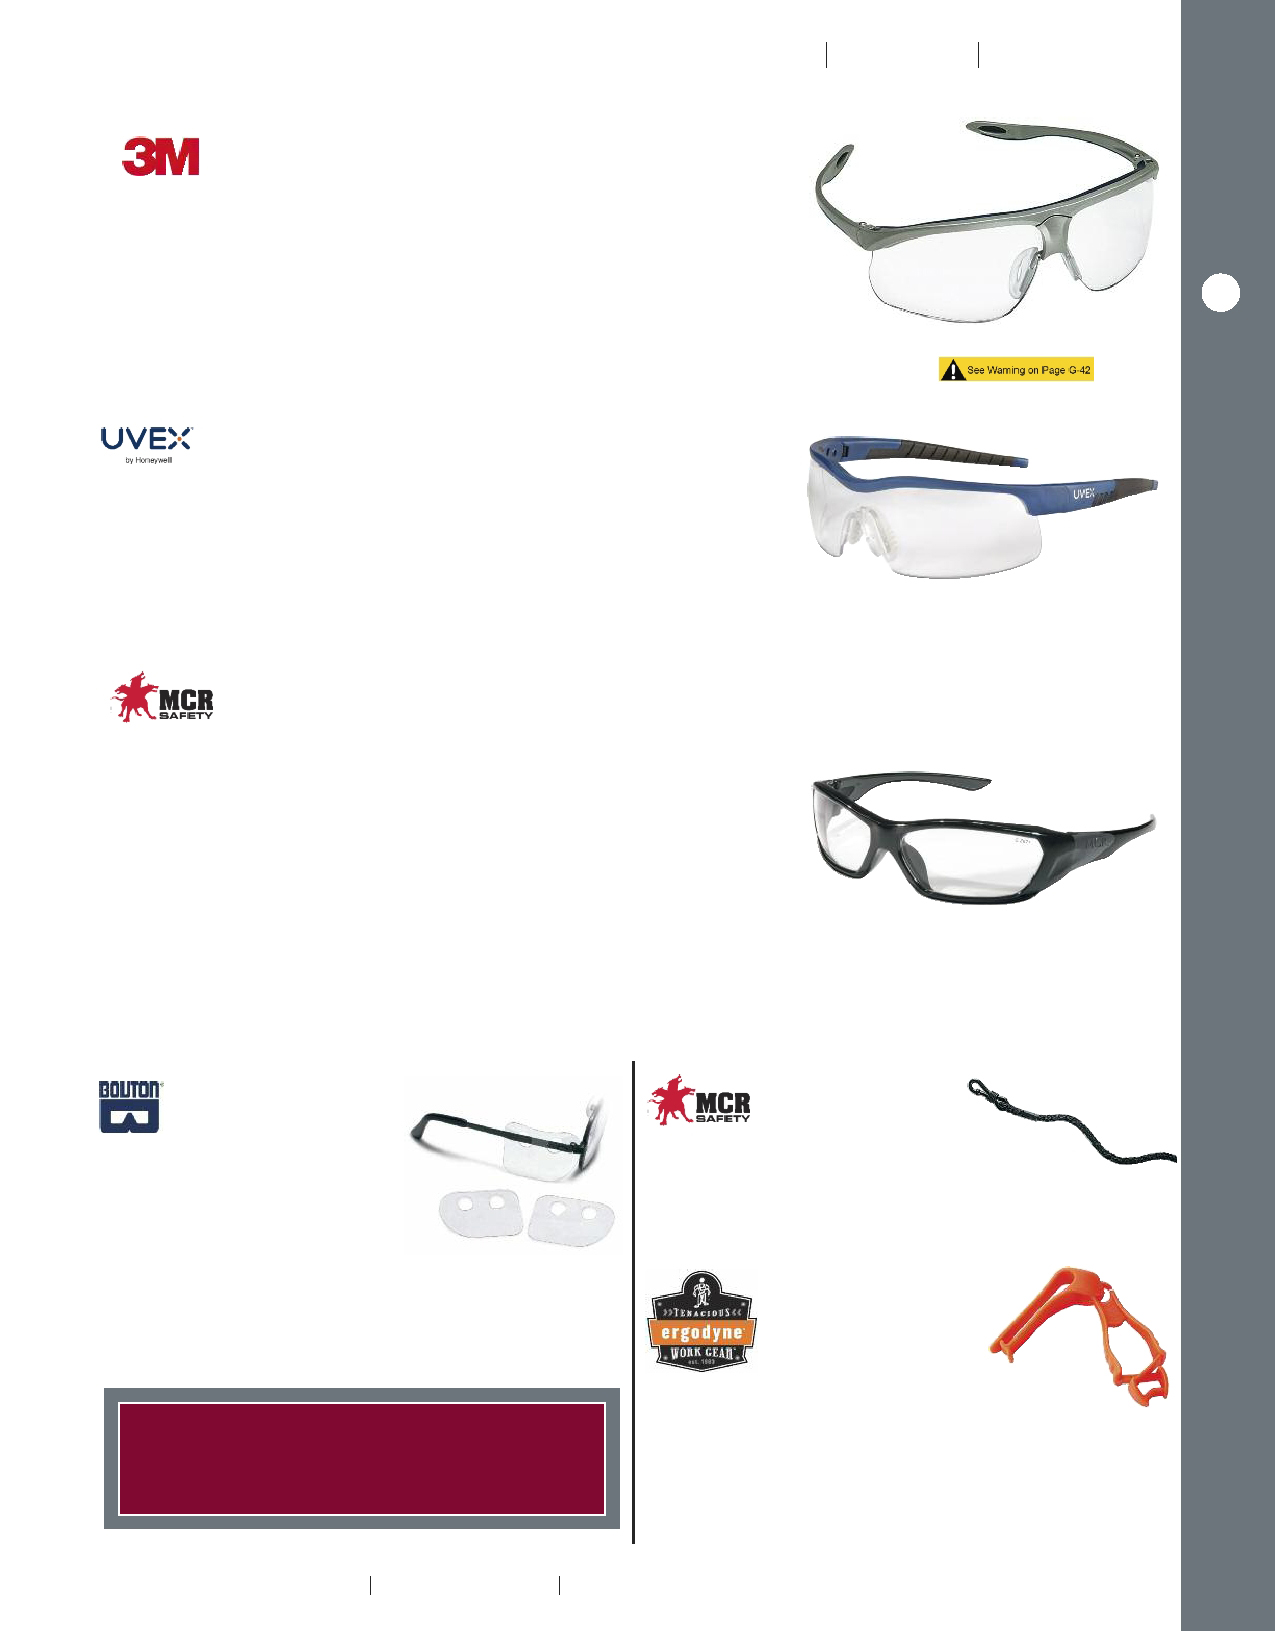 3d5e946b93 S afety g laSSeS – premium a cceSSorieS E yE P rOtEctiOn. 3m ™ maxim ™  Sport Protective eyewear